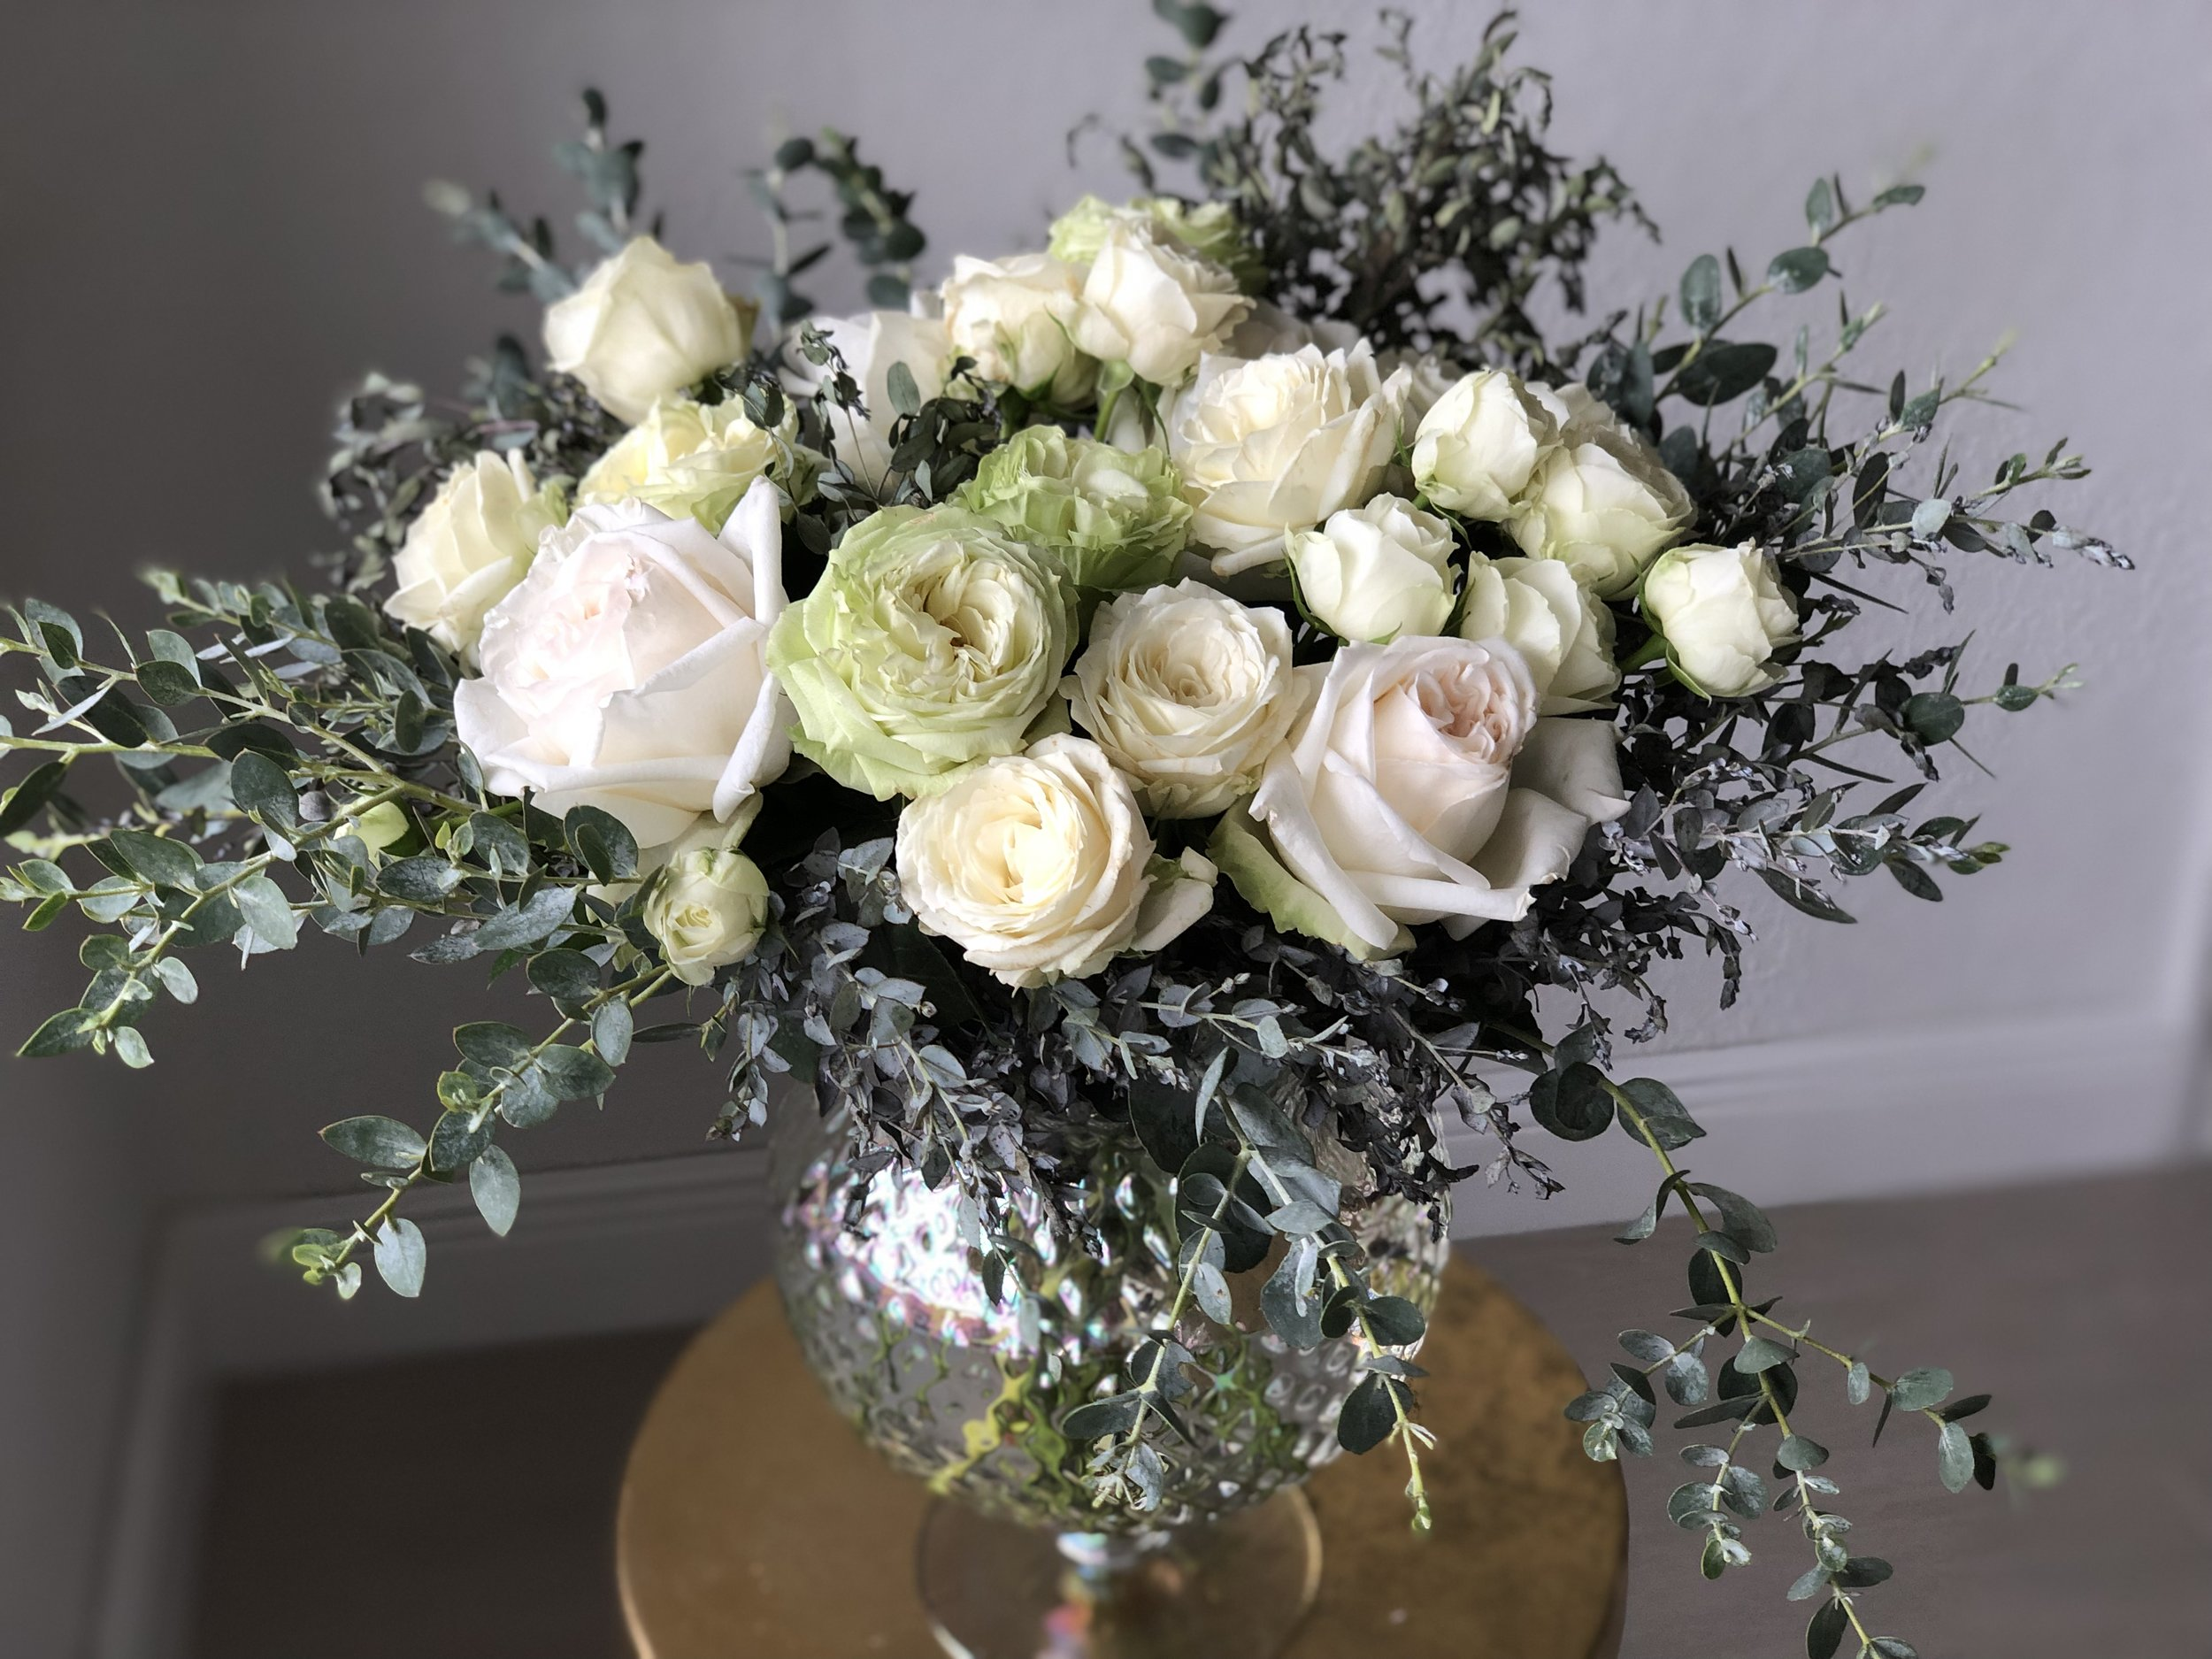 Arrangements - We offer a wide array of arrangements. We can also customize any size with your specific colors or flowers choice.